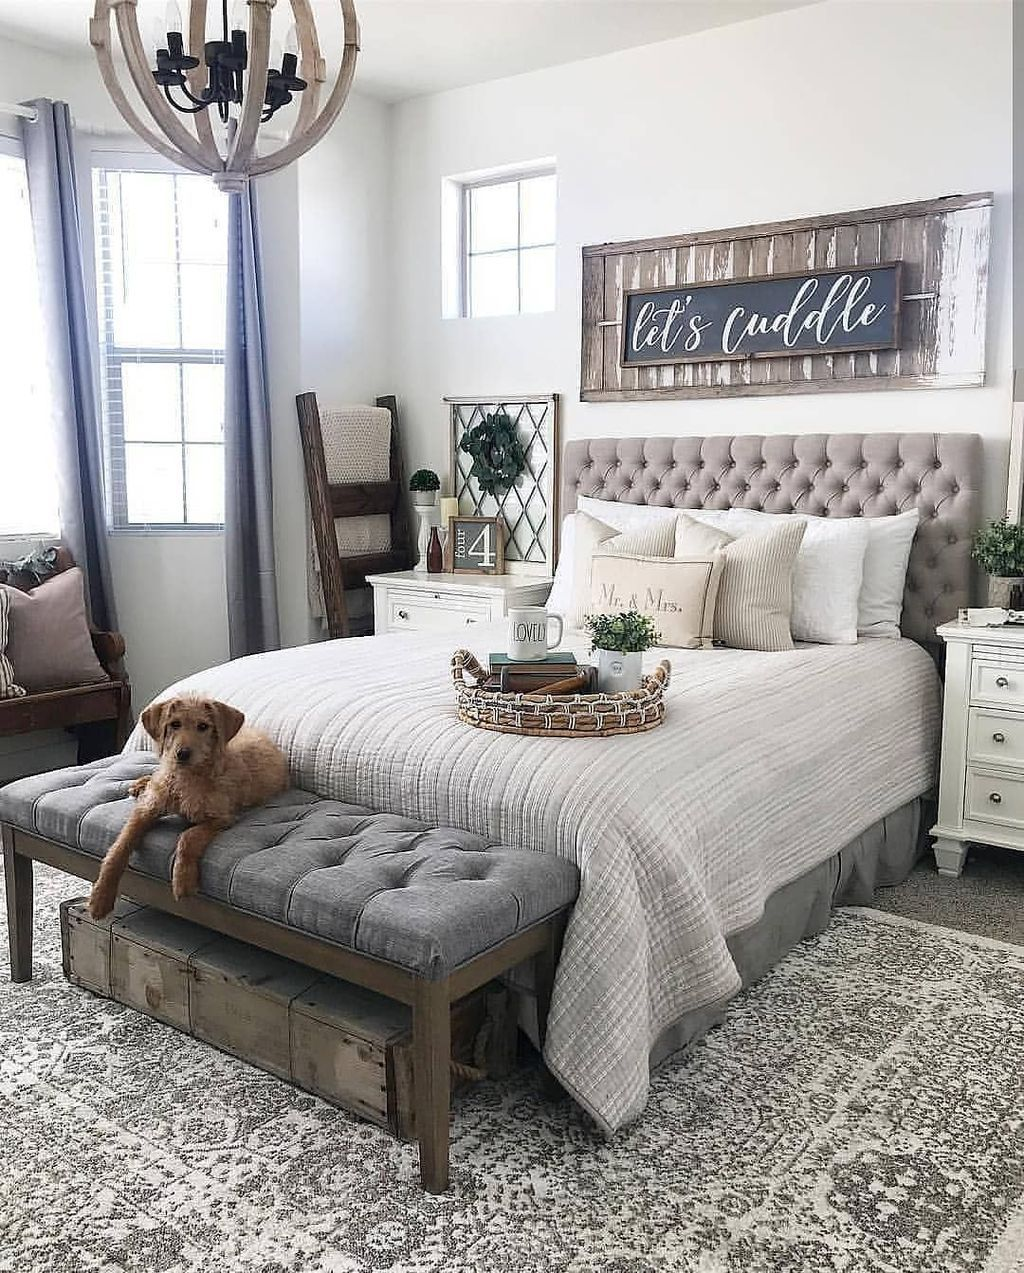 38 Fabulous Modern Farmhouse Bedroom Decorating Ideas Rustic